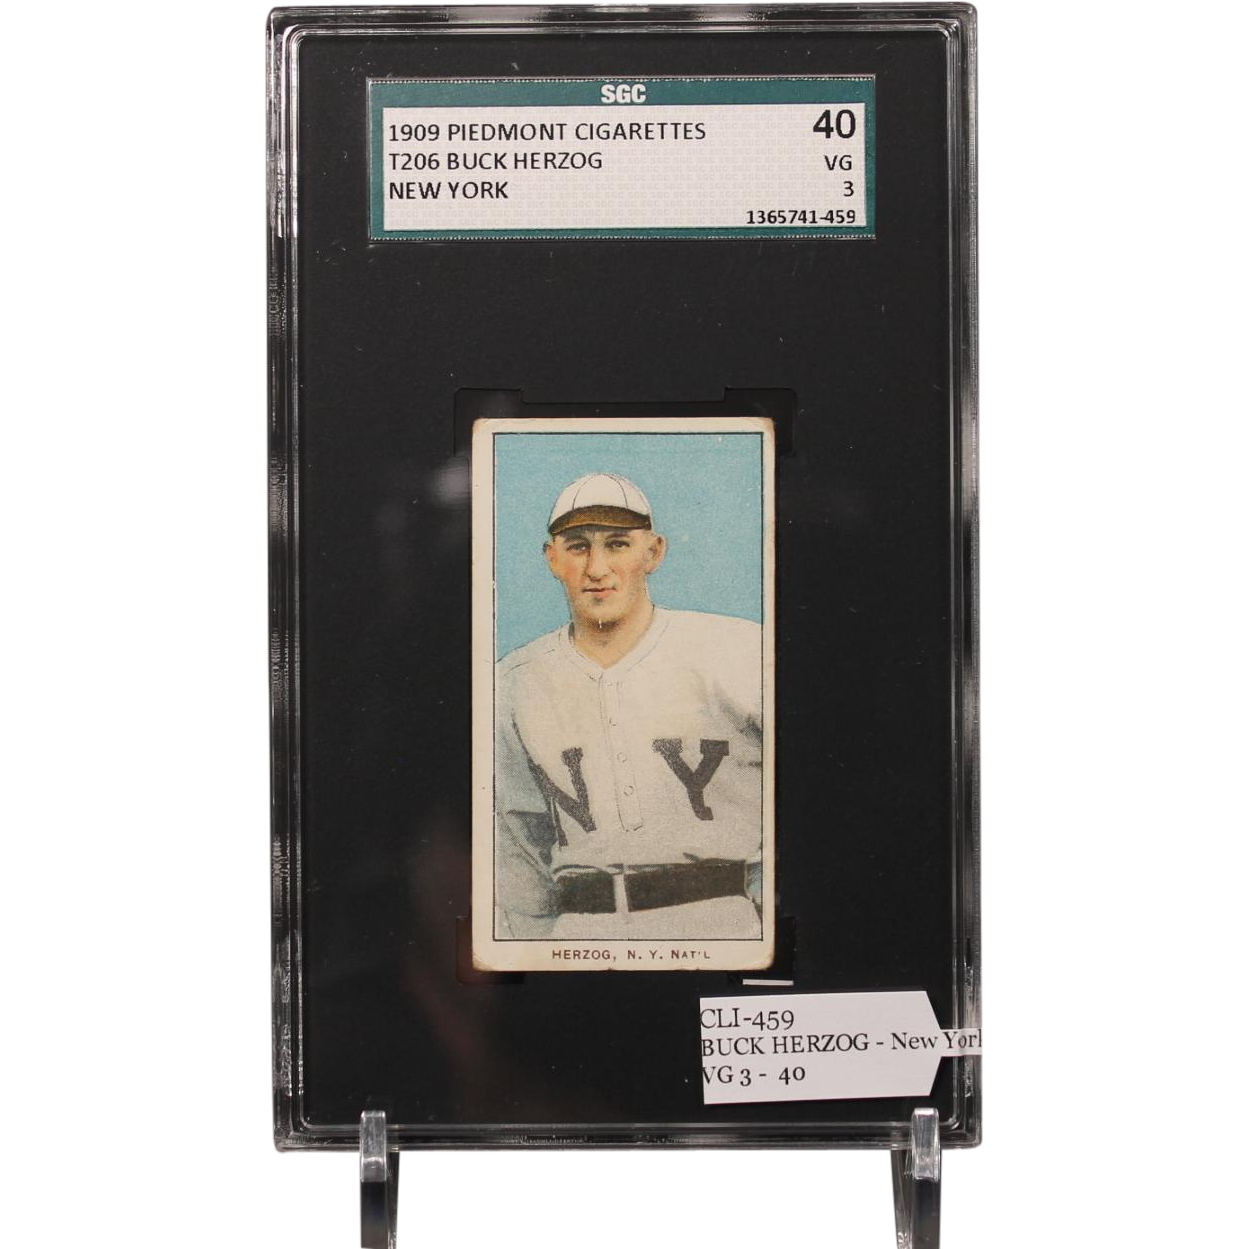 T206 BUCK HERZOG - New York SGC grade 40 VG 3